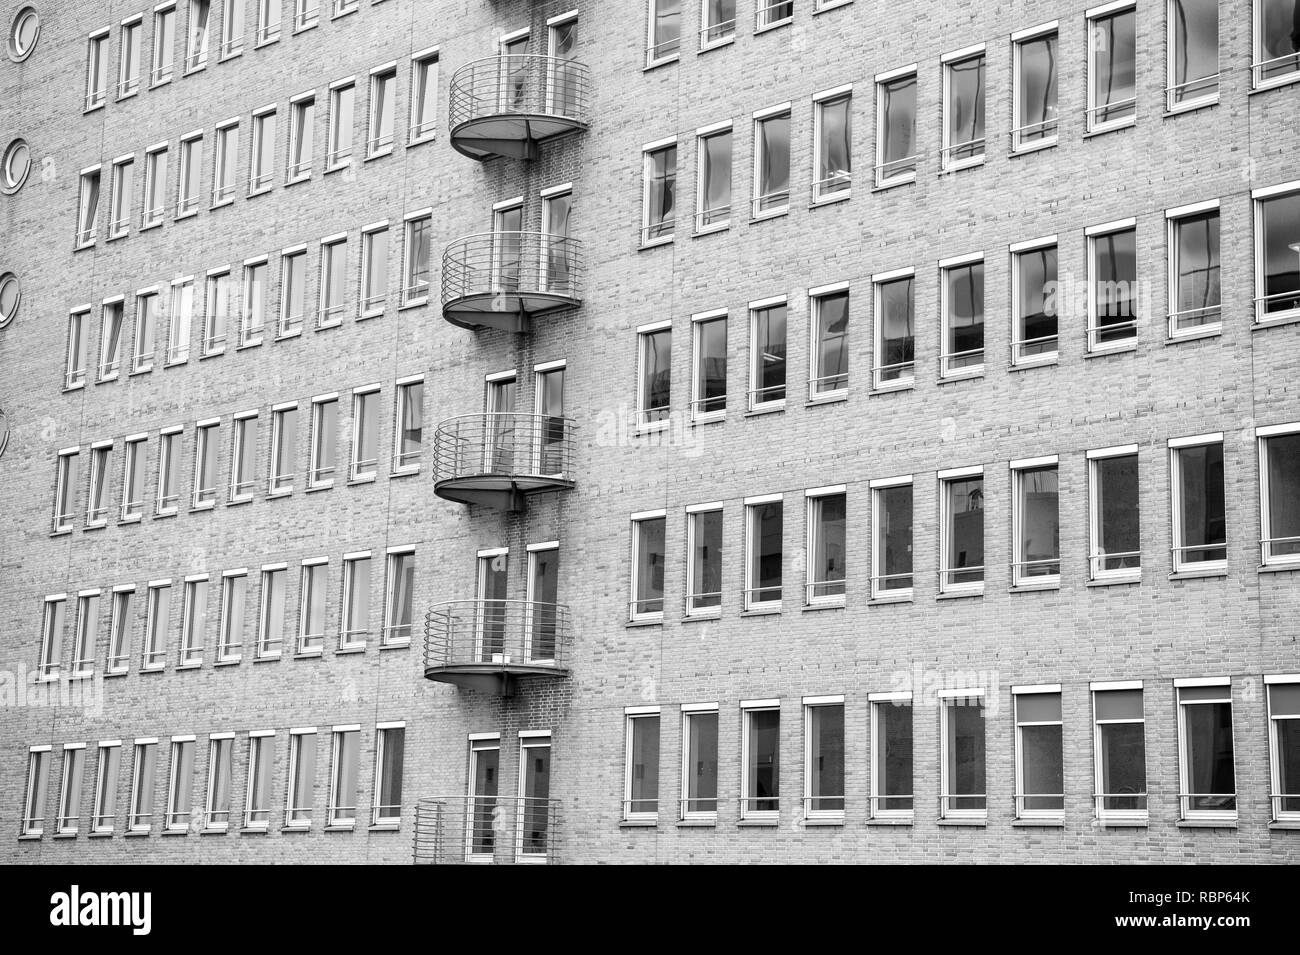 Building facade wall background of red bricks with windows in Hamburg, Germany. Business center, district. Architecture, structure, design. - Stock Image